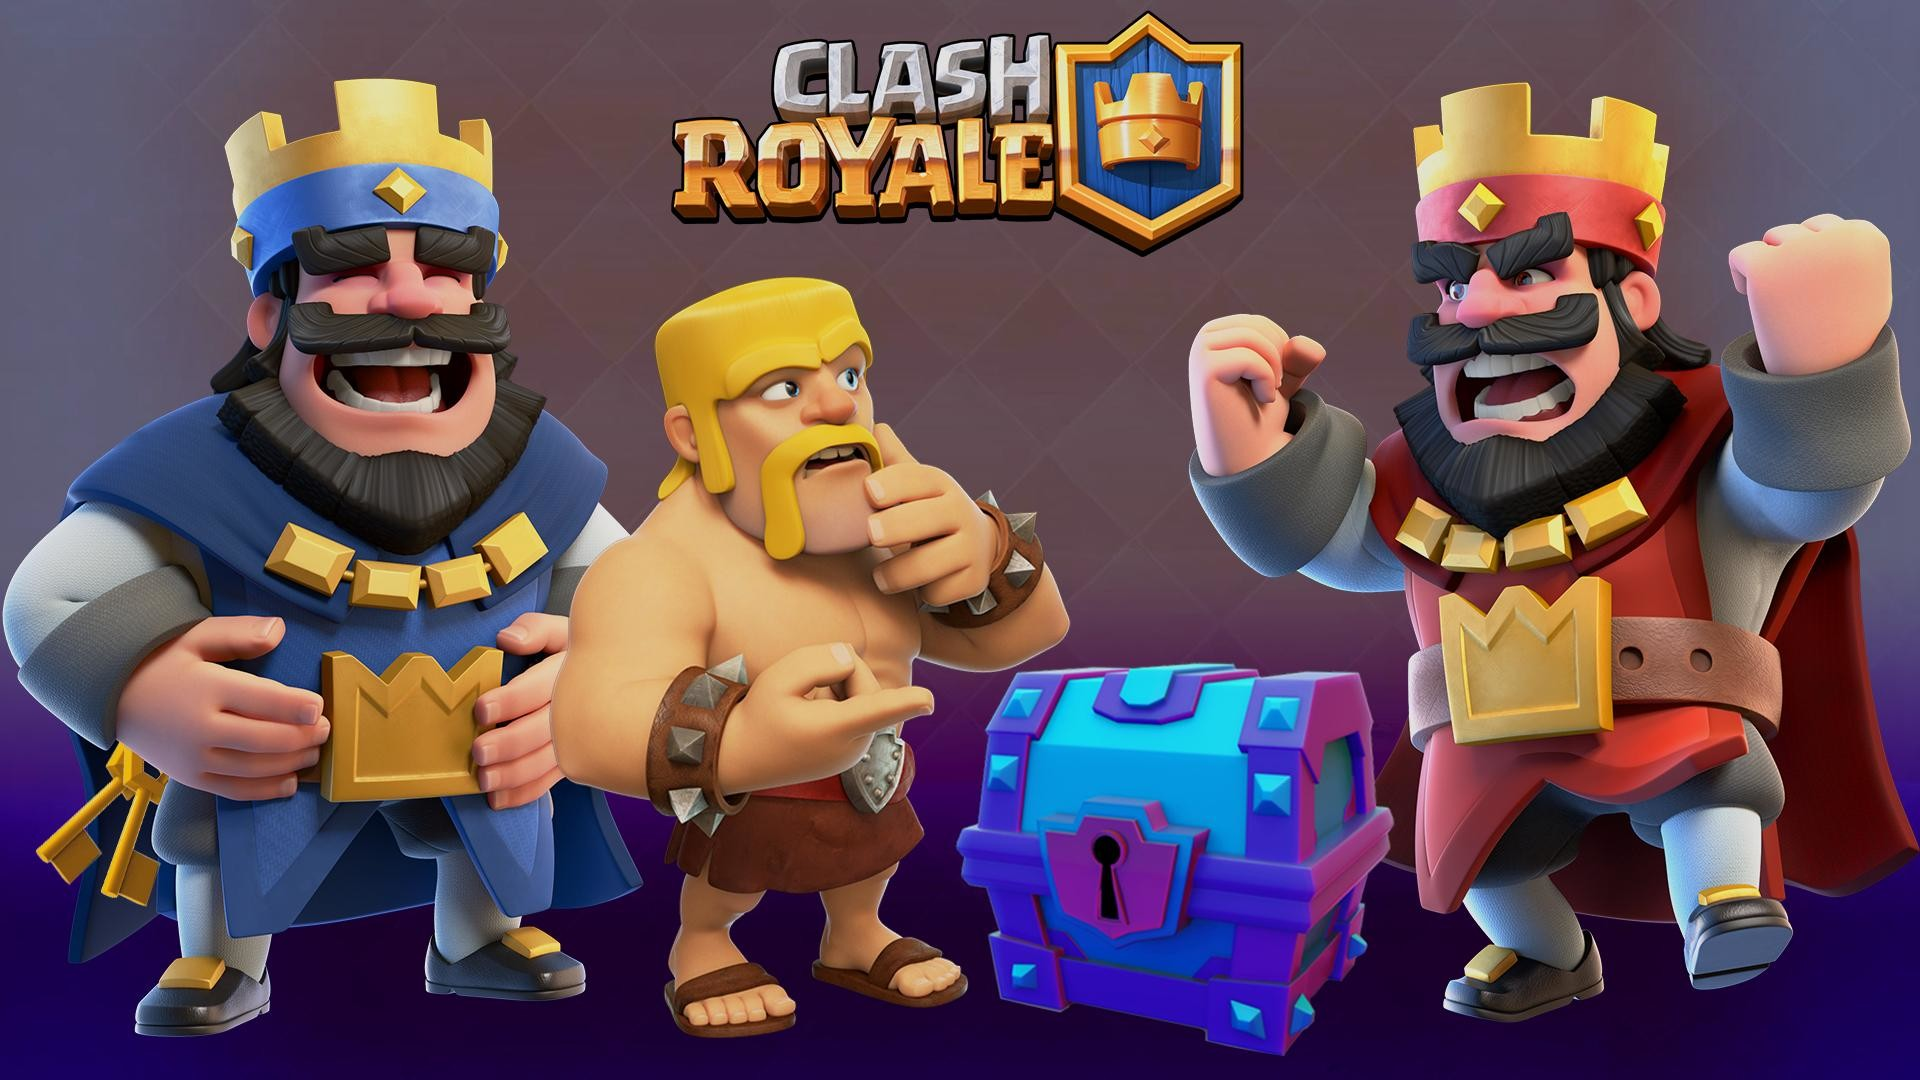 1920x1080 Clash Royale Wallpaper